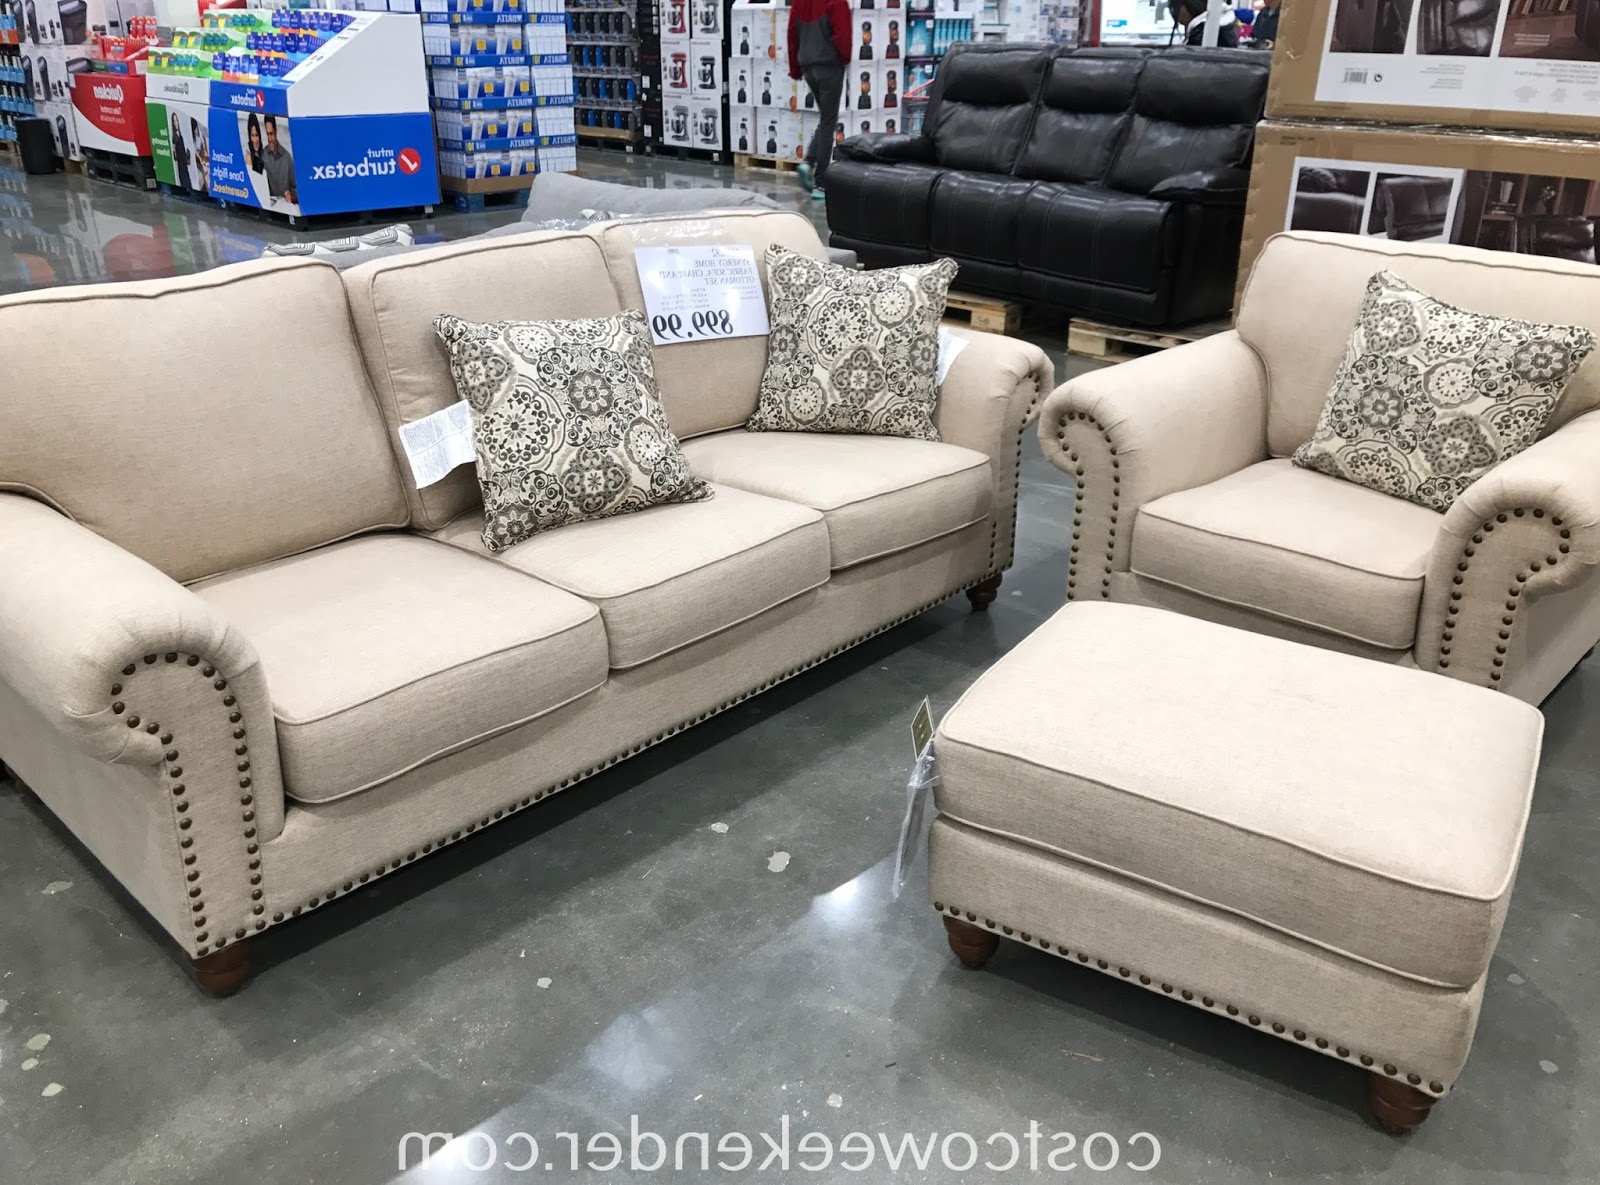 Popular Synergy Home Fabric Sofa, Chair & Ottoman Set (View 14 of 20)